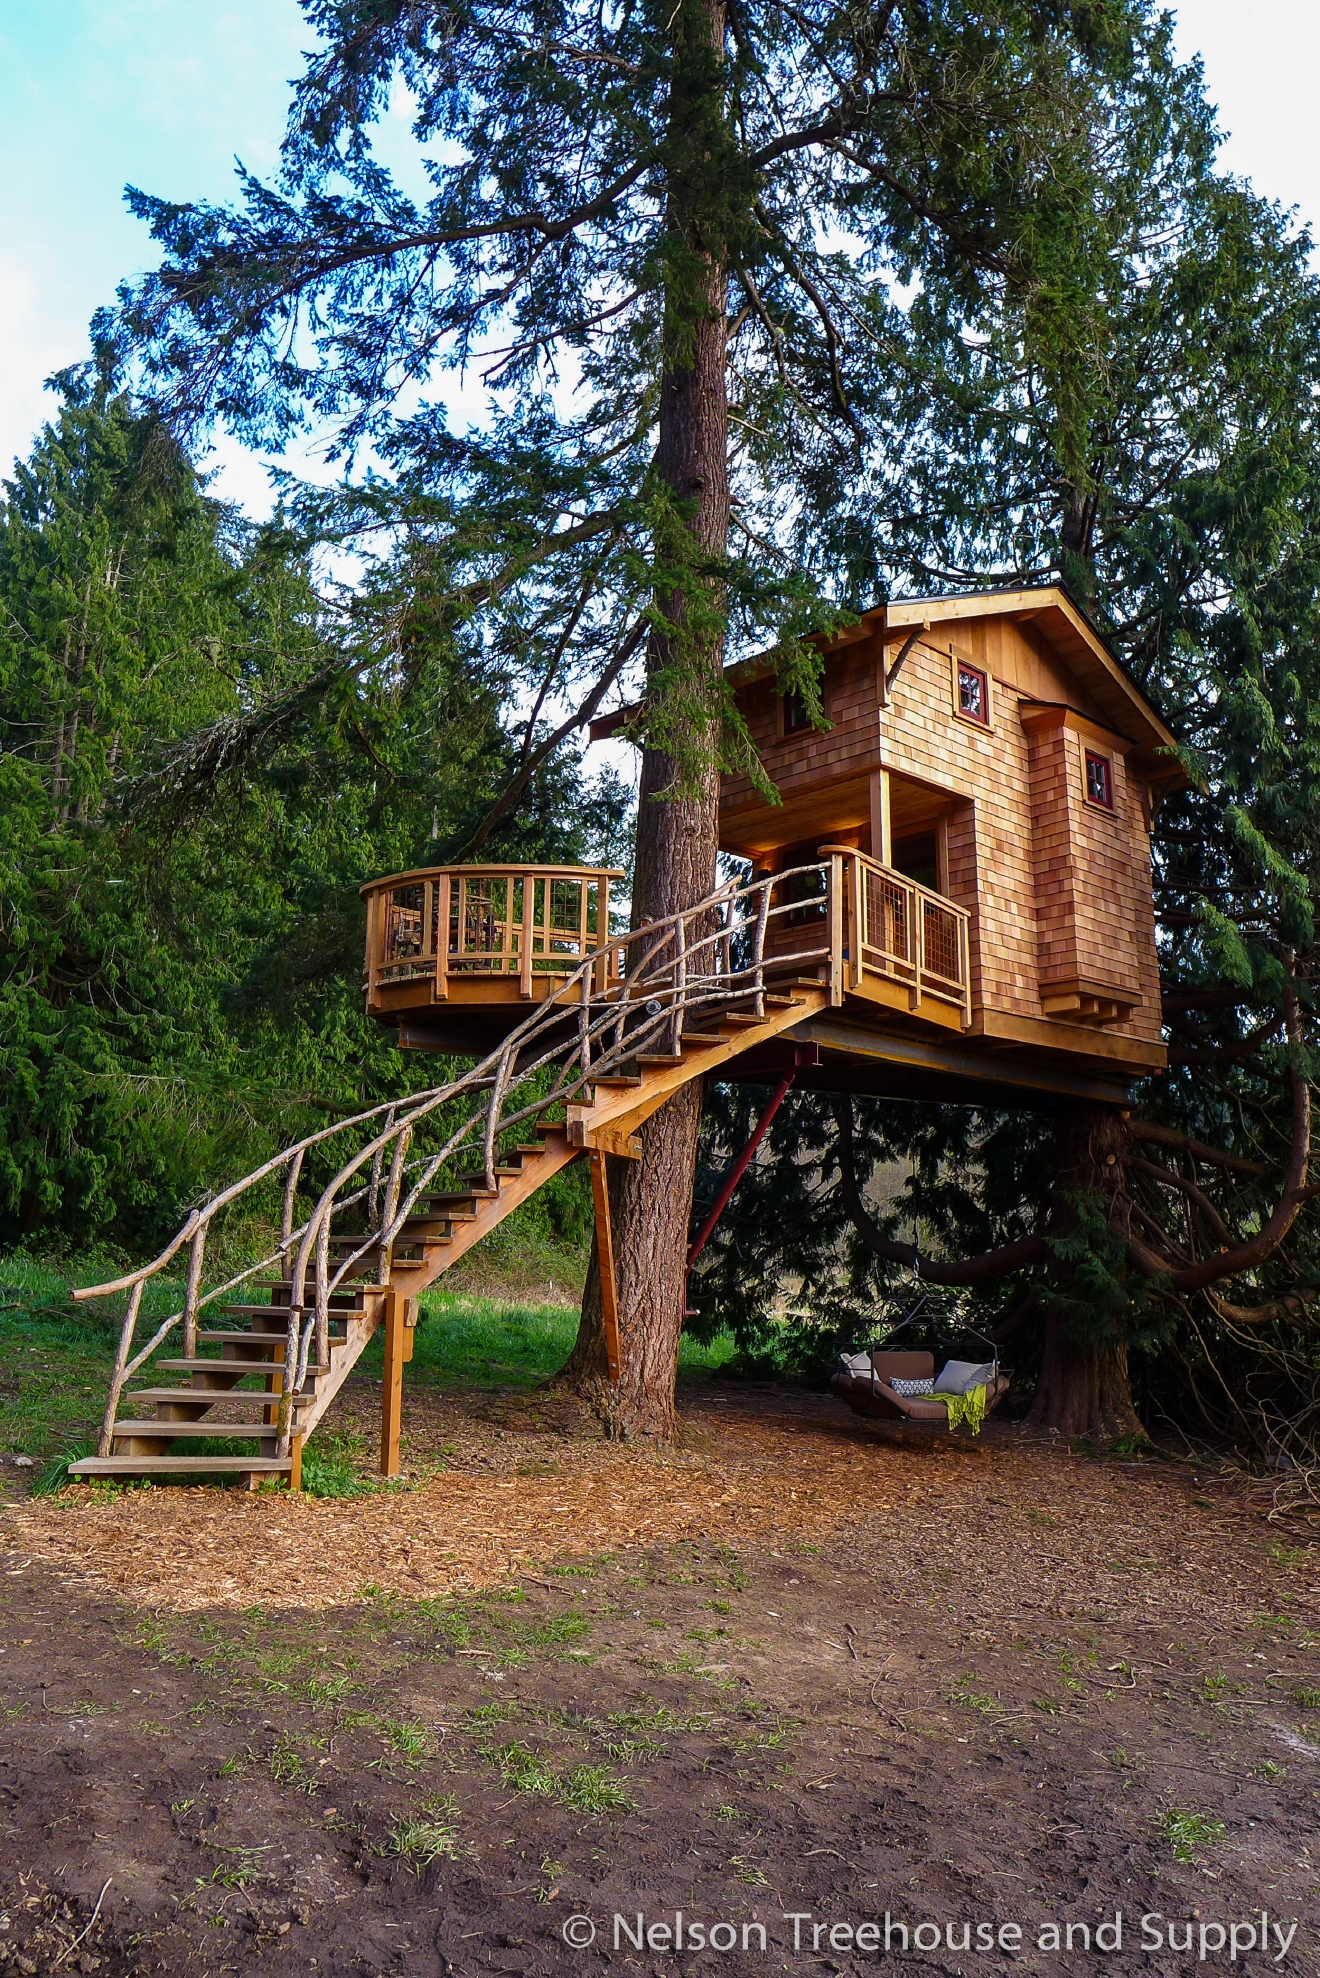 Many of us here in the PNW are familiar with 'Treehouse Masters' the Animal Planet show where Fall City's Pete Nelson and crew travel across the country to build incredible treehouses for a lucky few. With the show's next season just underway, and the local connection - we thought we'd take a look at all the treehouses they built in 2016. We'll do one 'Treehouse of the Day' a day until we run out! Today's Treehouse stays within the family; the Nelson family! Pete's son Charlie acts as project manager as they built a treehouse for him to live in full time in Fall City, WA.  Full episodes at animalplanet.com. (Image: Animal Planet)